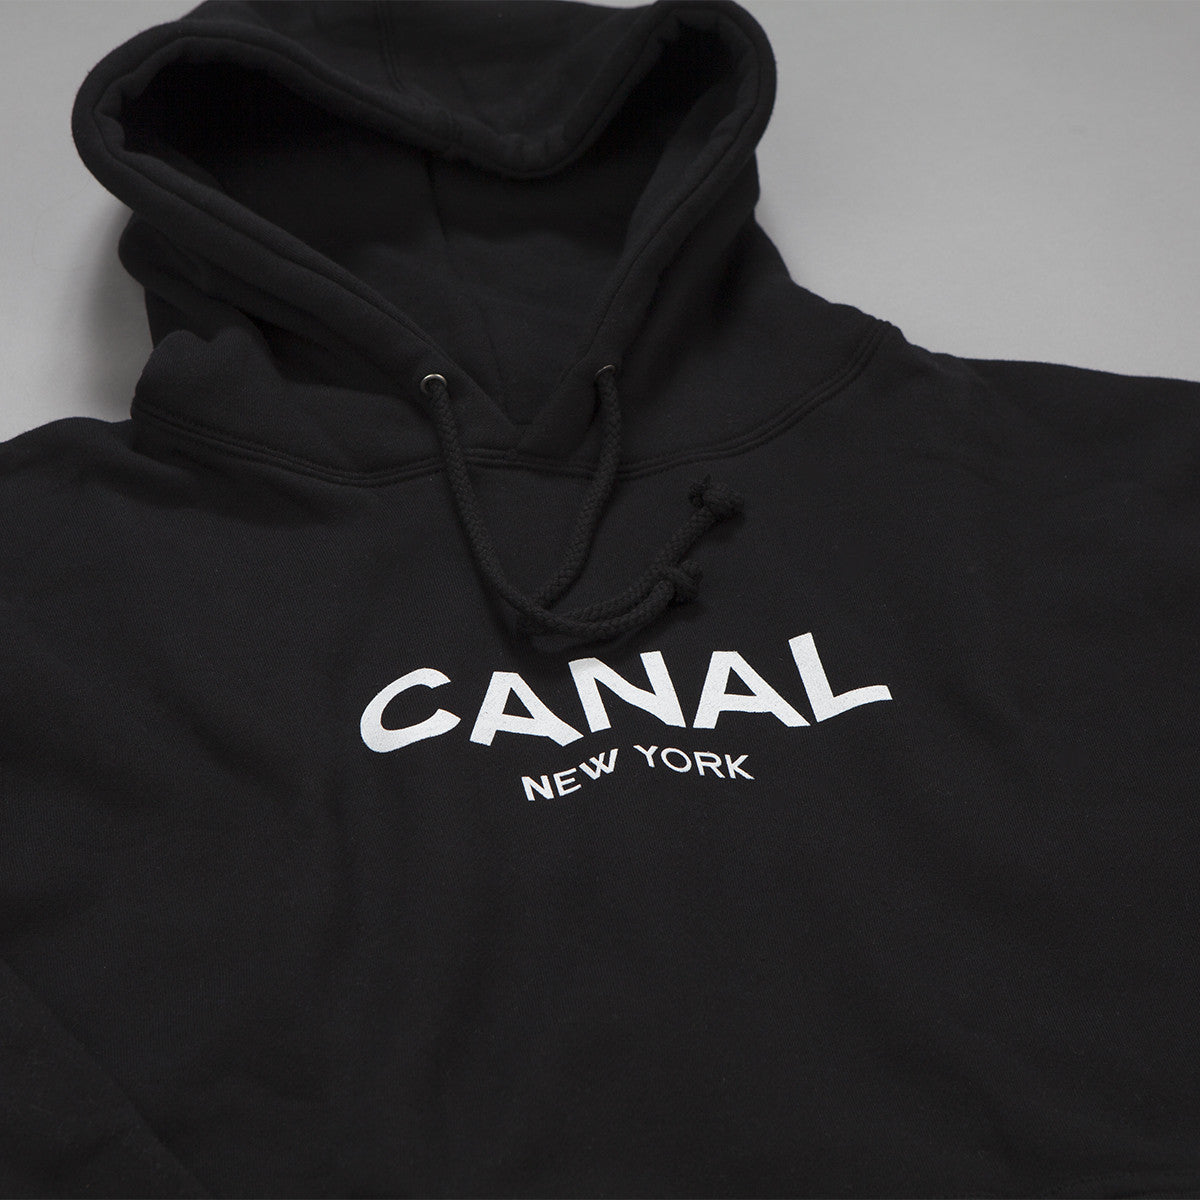 Canal New York Hooded Sweatshirt - Black